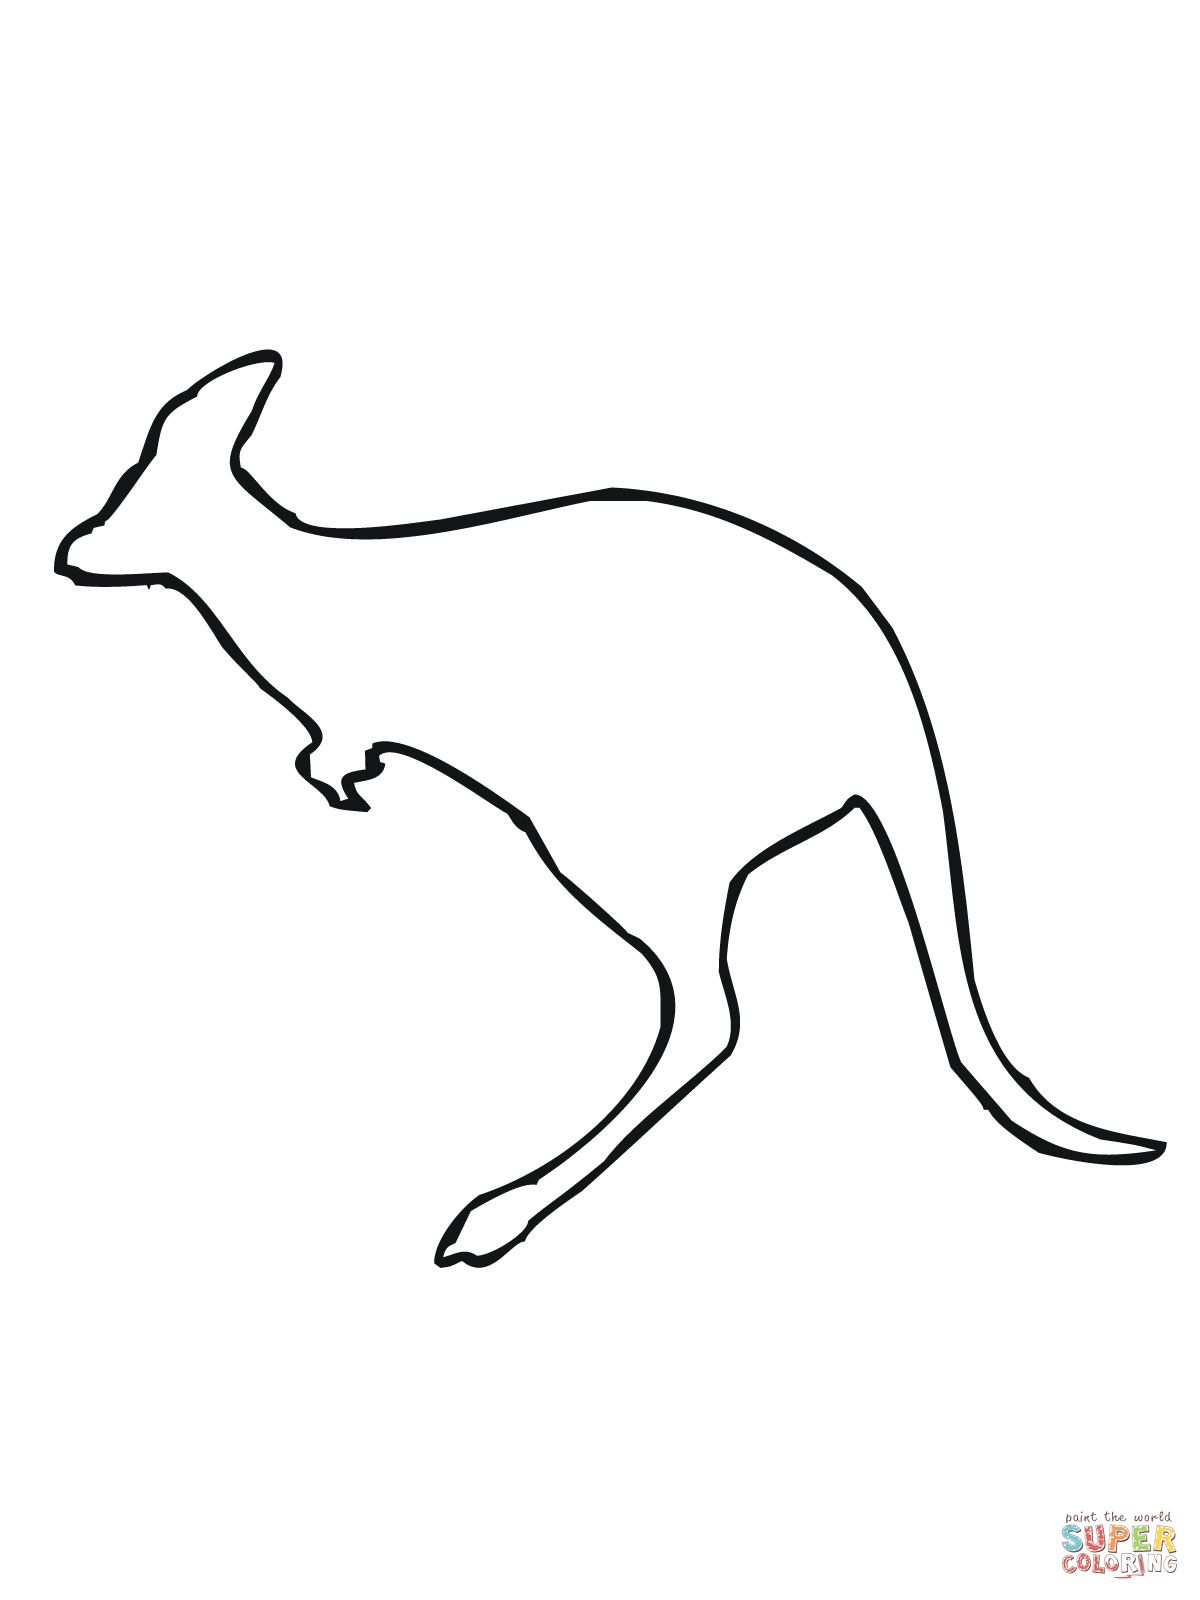 Line Drawing Kangaroo : Simple kangaroo outline pixshark images